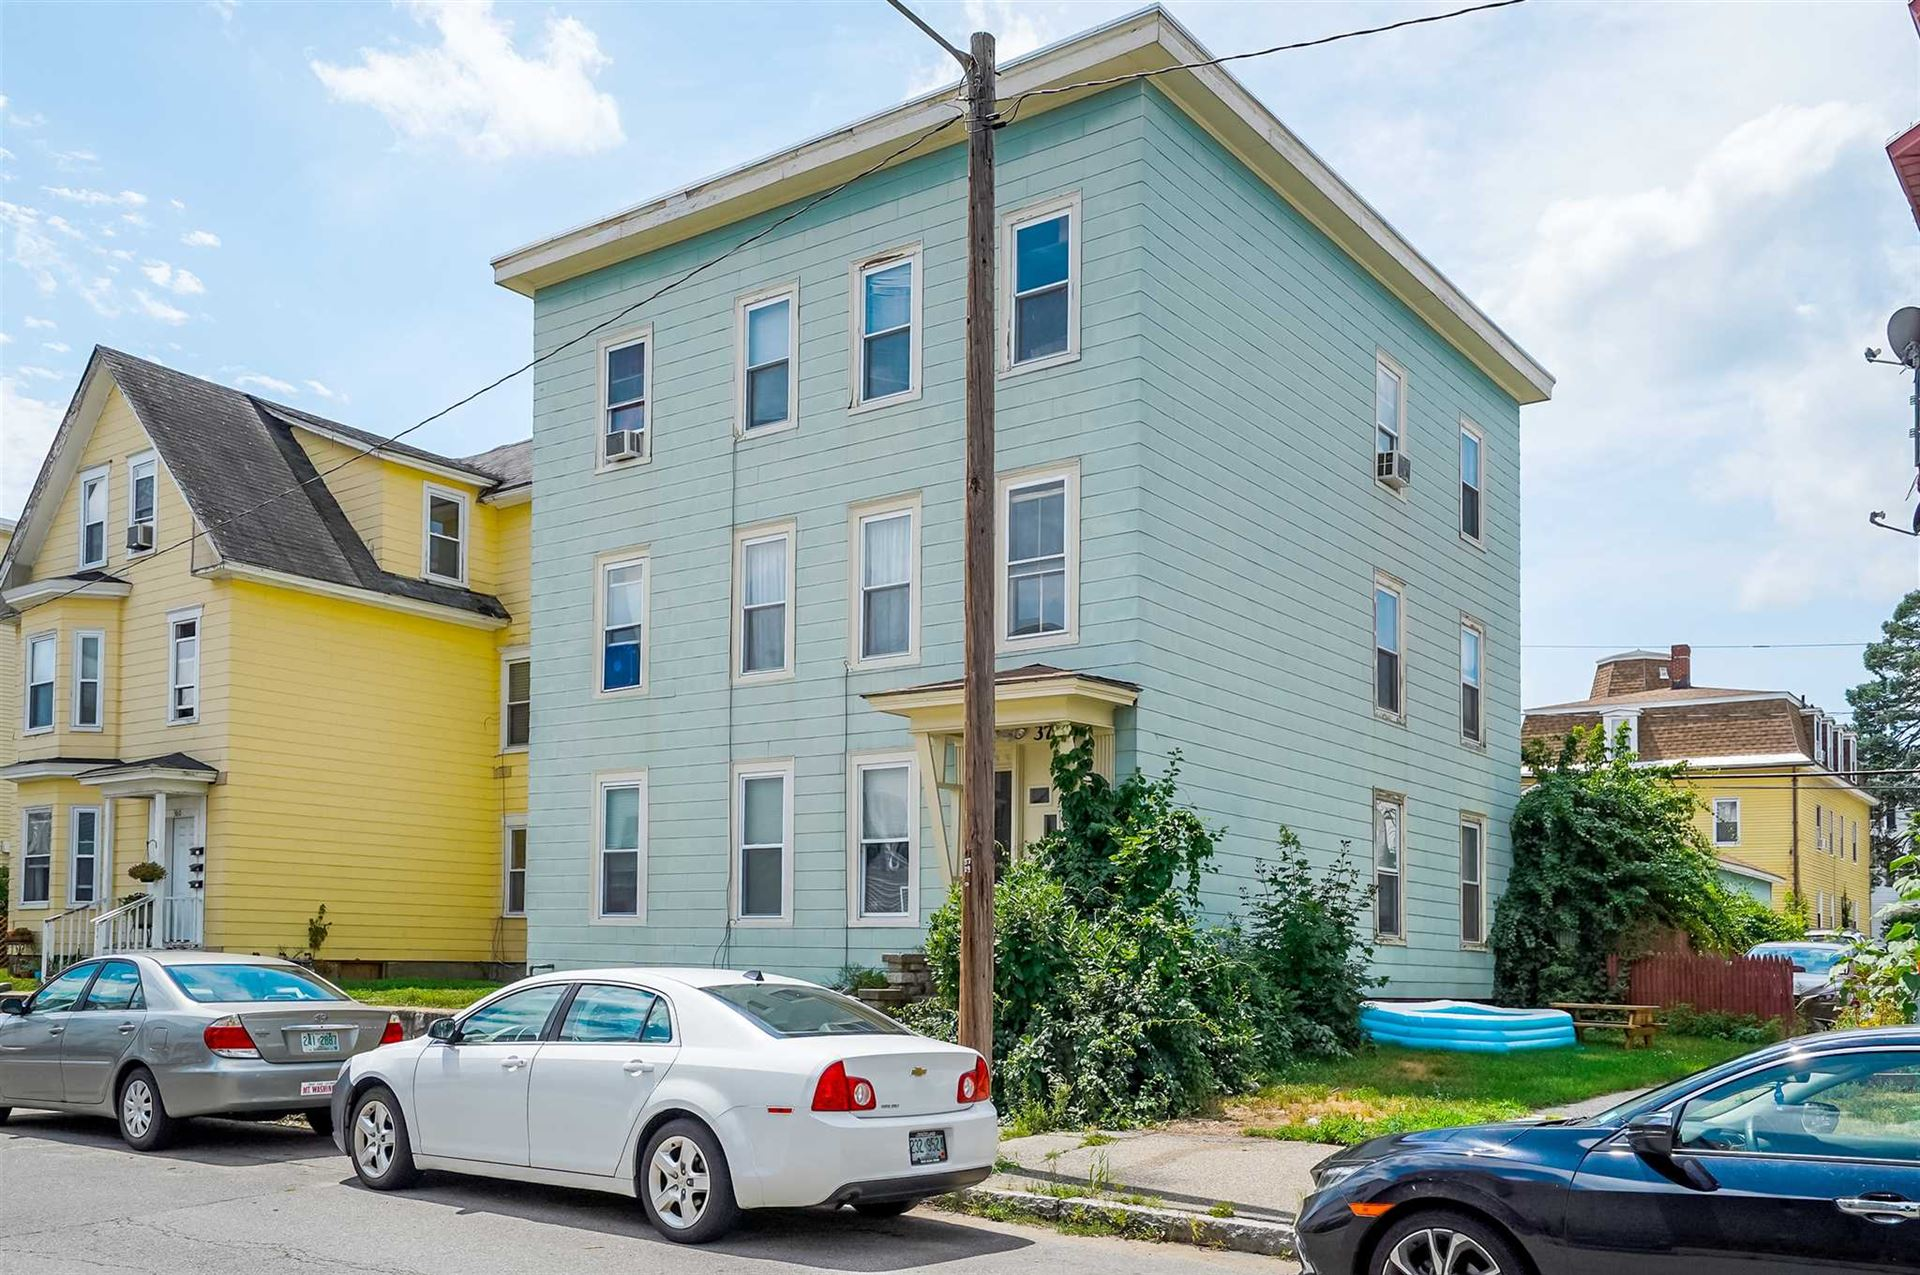 370 Dubuque Street, Manchester, NH 03102 - MLS#: 4819184